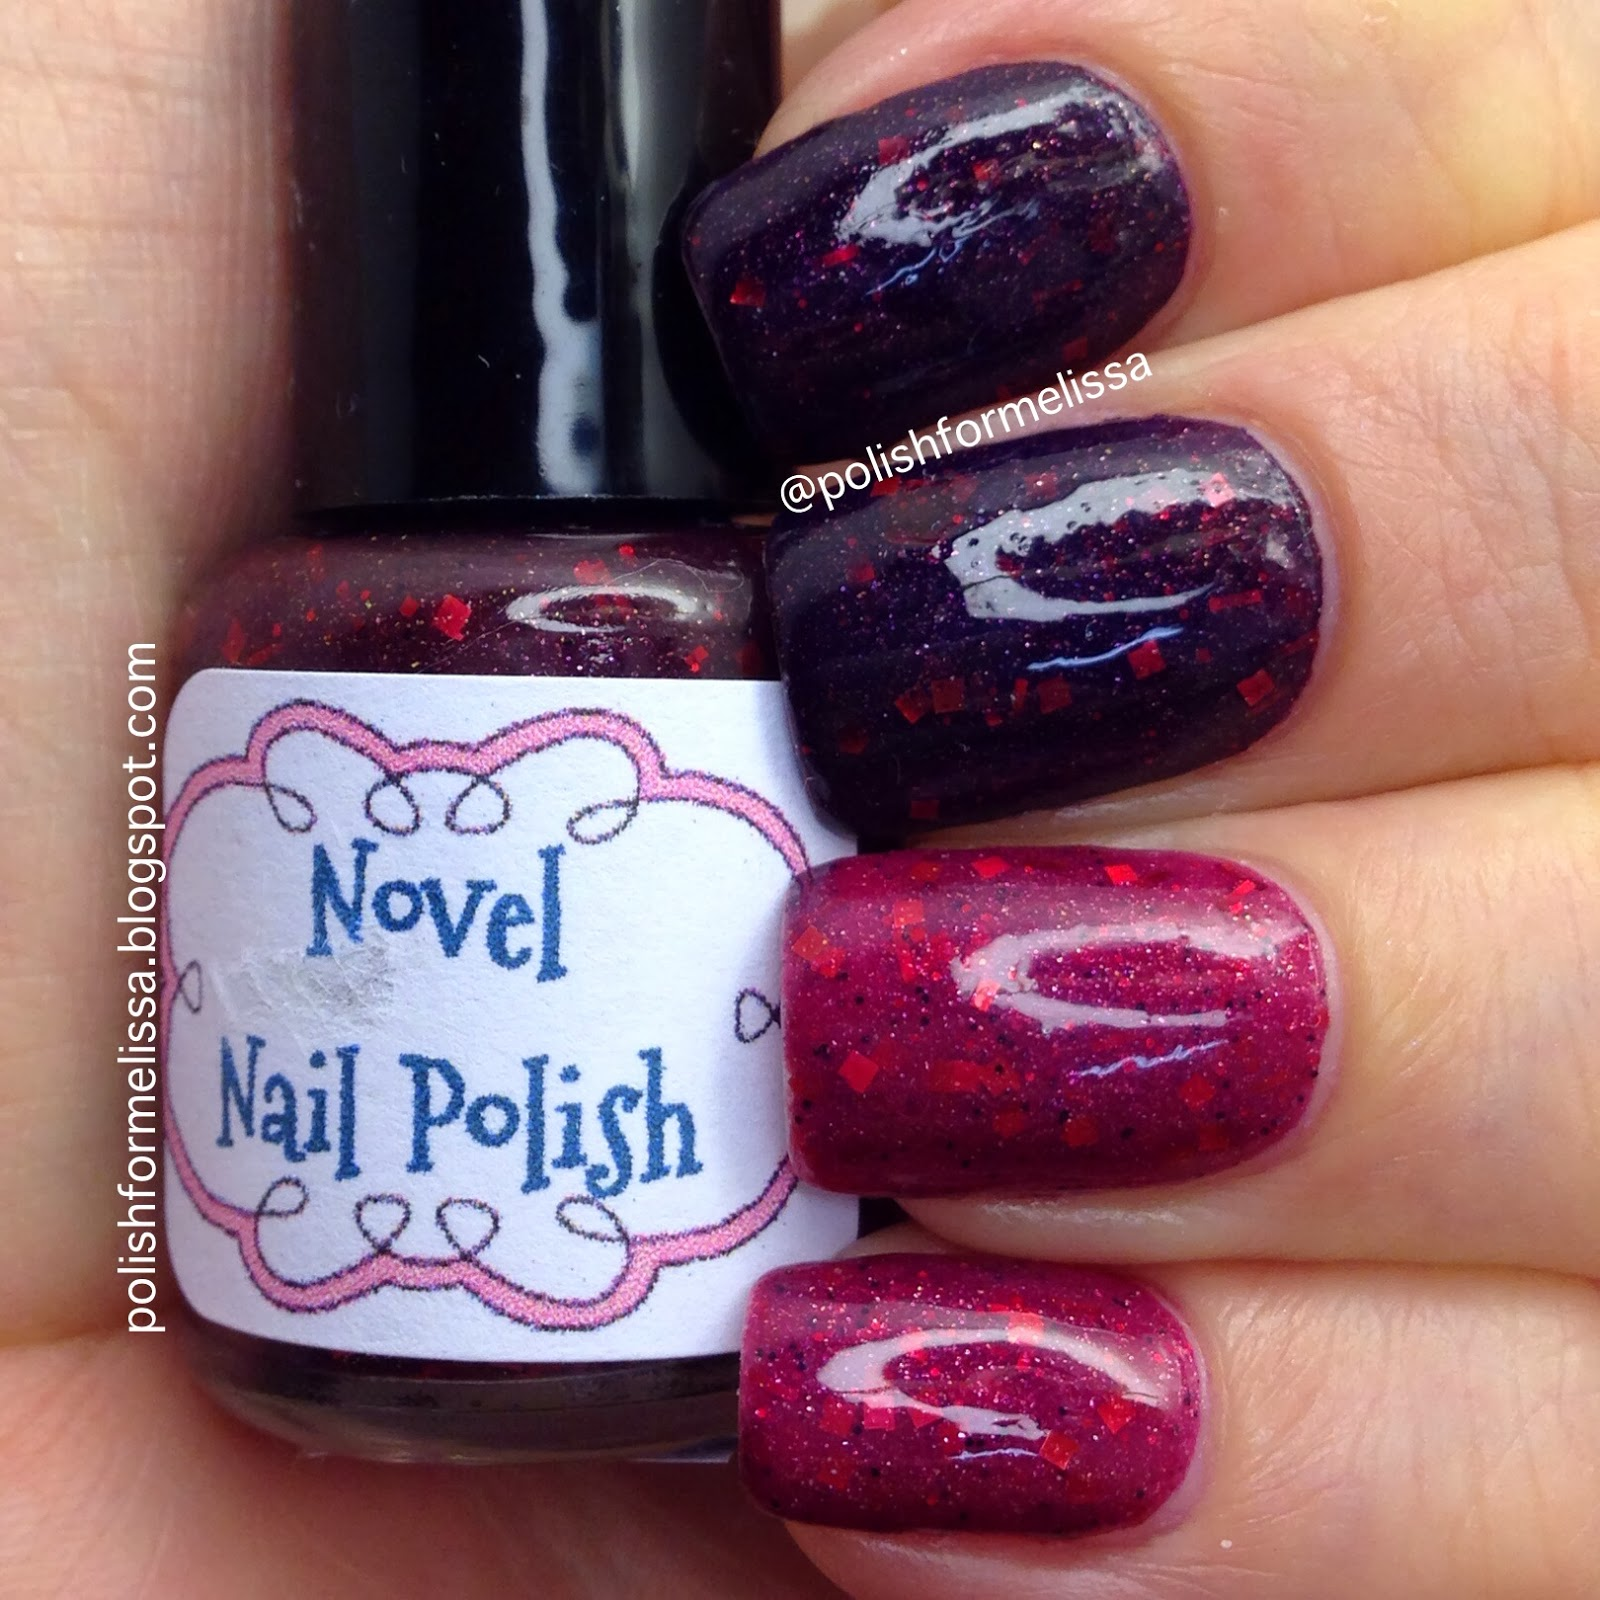 Polish For Melissa: Novel Nail Polish